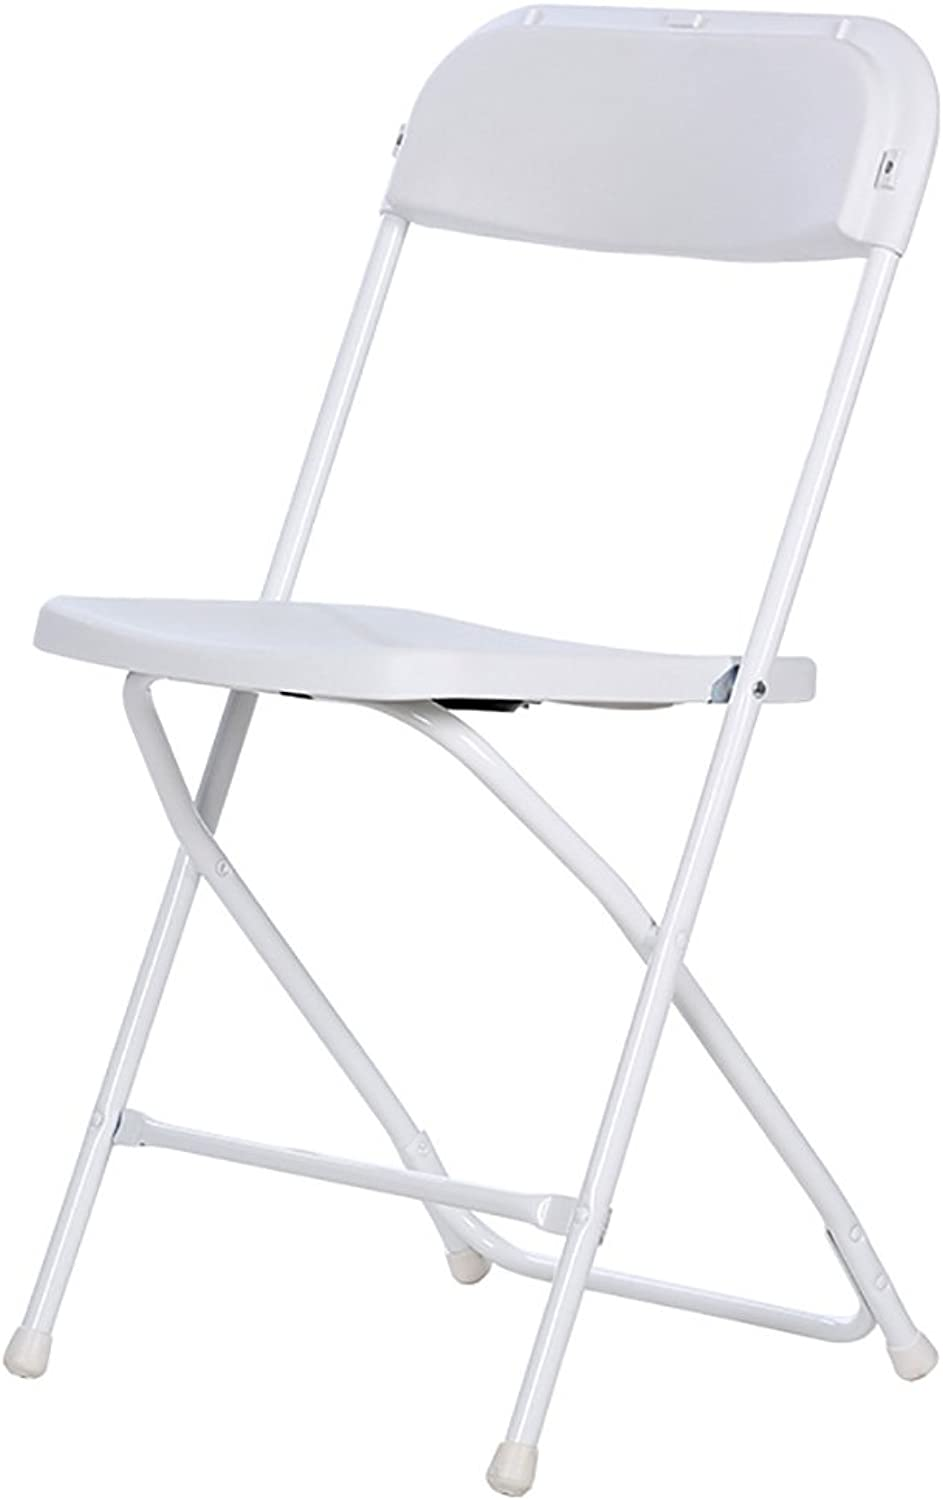 Chair Folding Chairs Plastic Folding Chairs Business Show Chairs Leisure Back Chairs Computer Chairs Dining Chairs Office Chairs Chair Chairs (color   White)